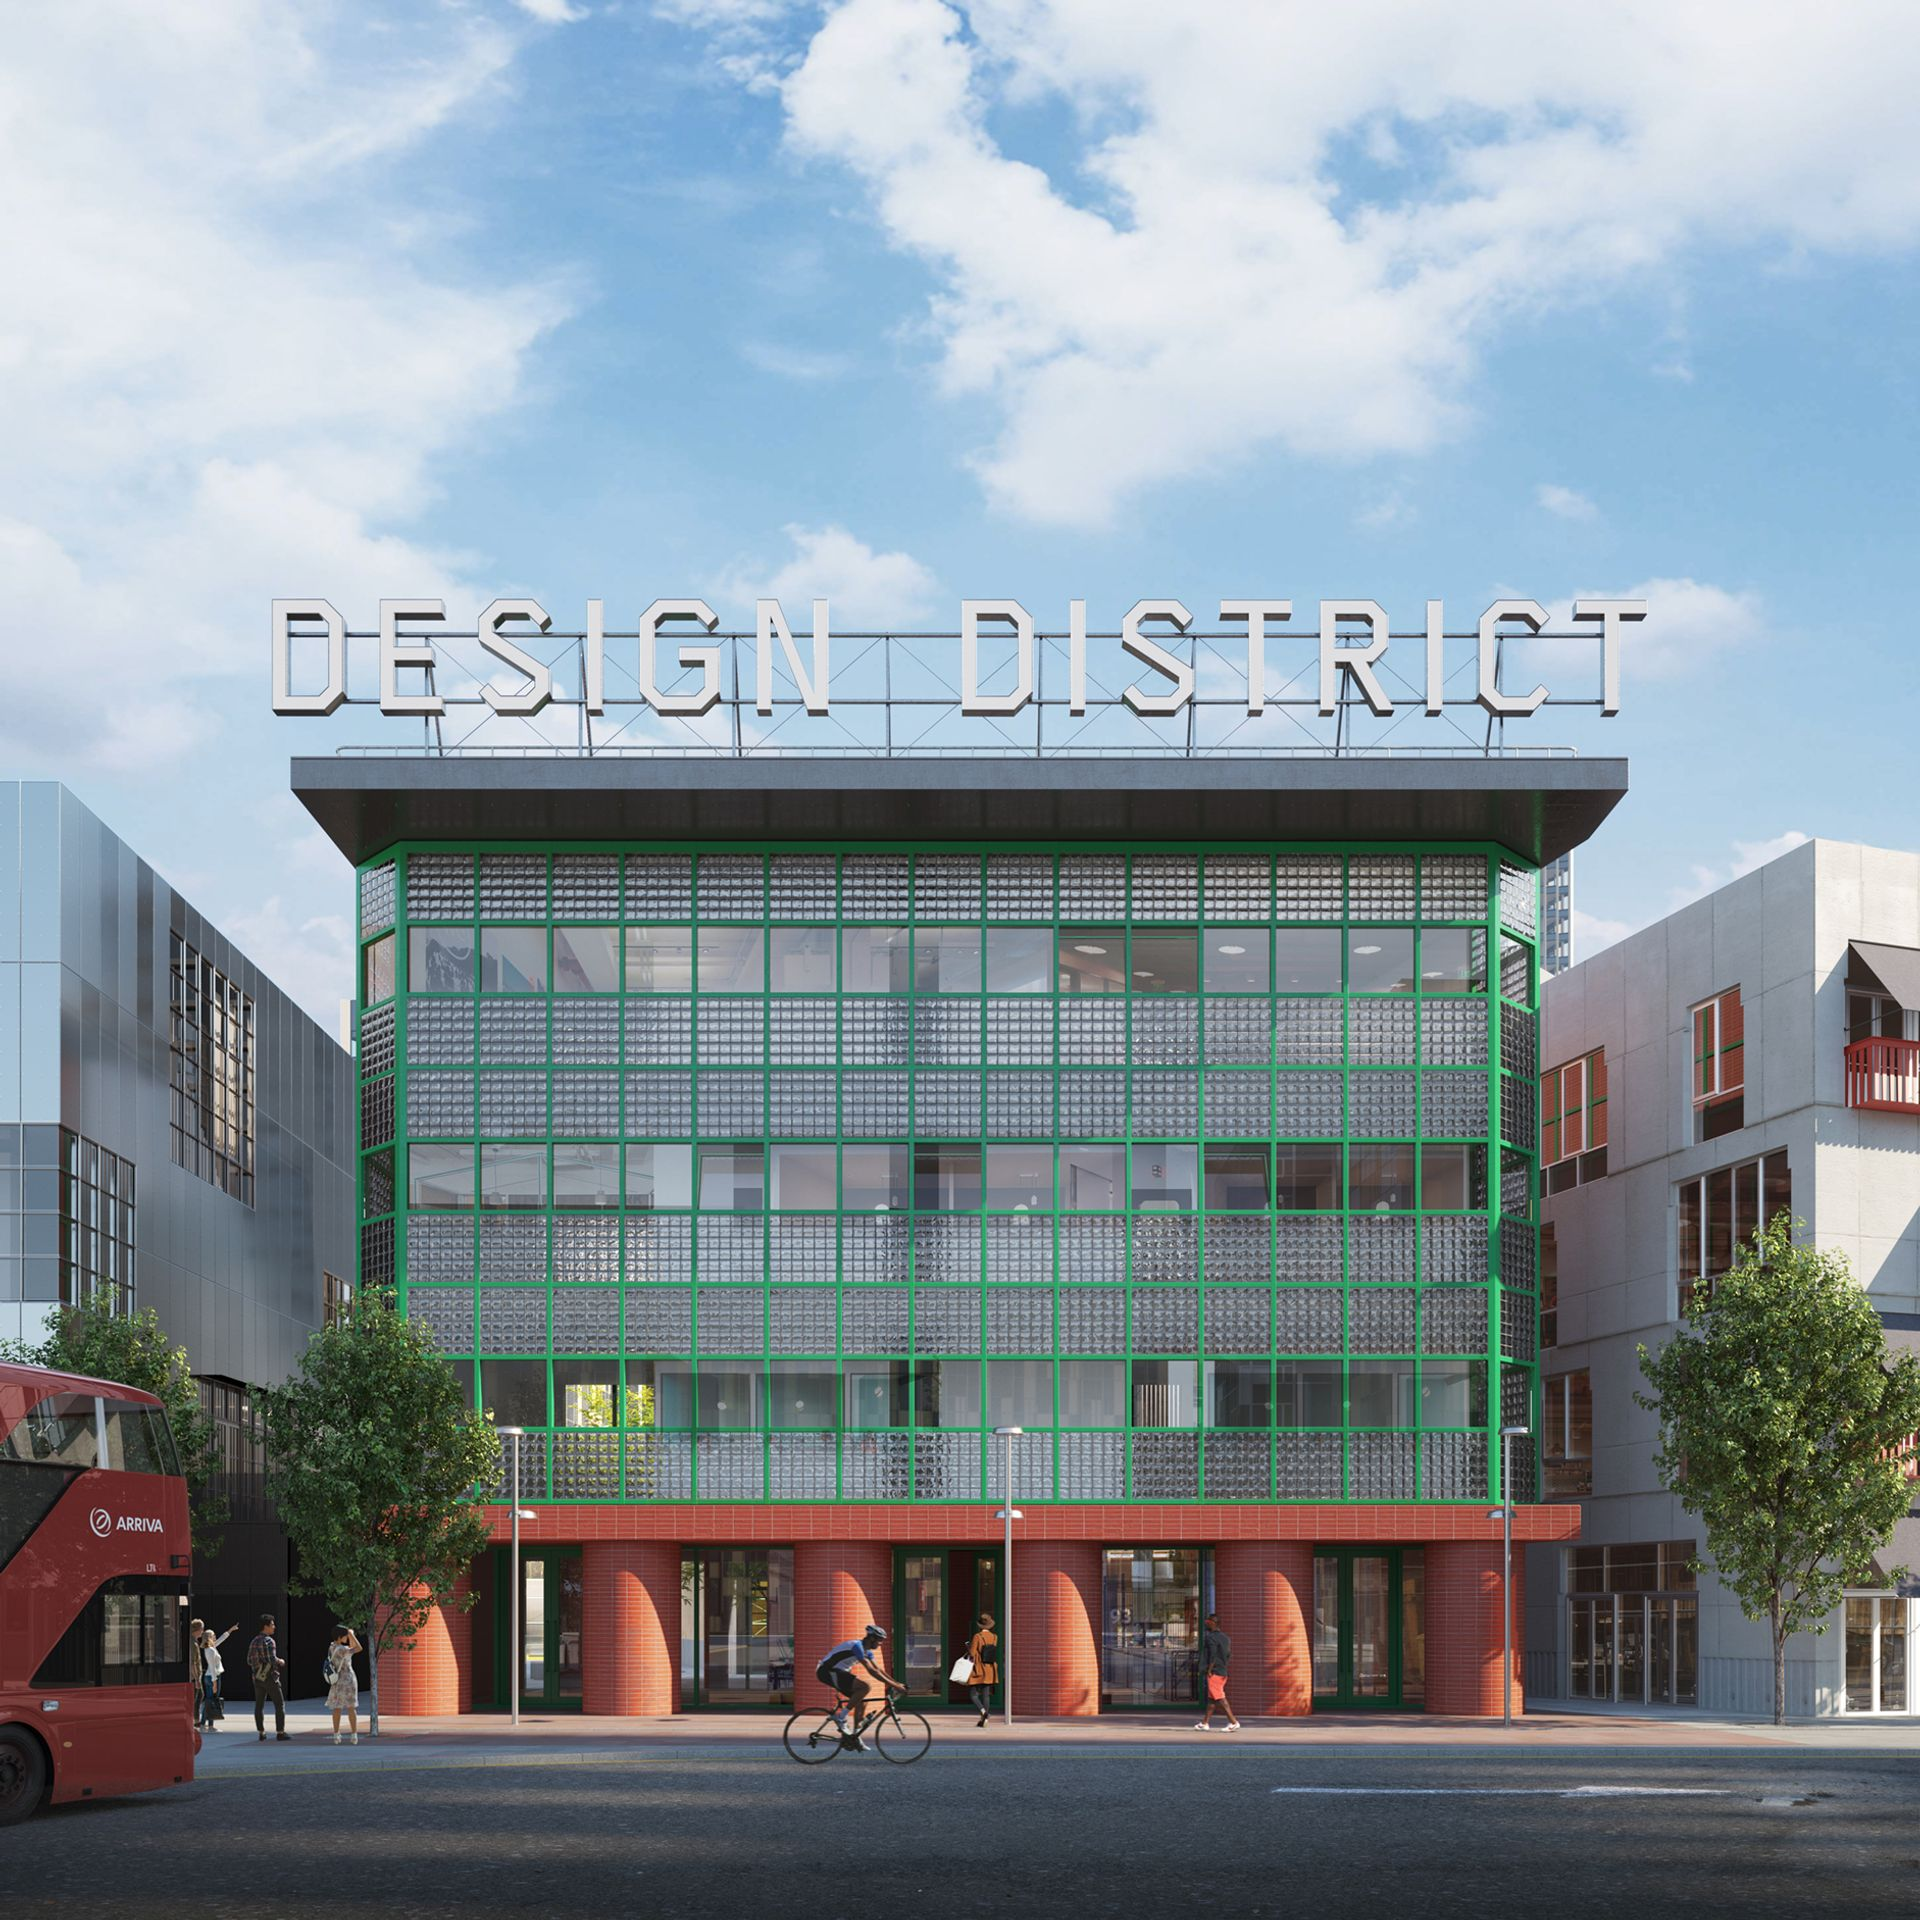 Rendering of the new queer arts venue, located in Greenwich's Design District